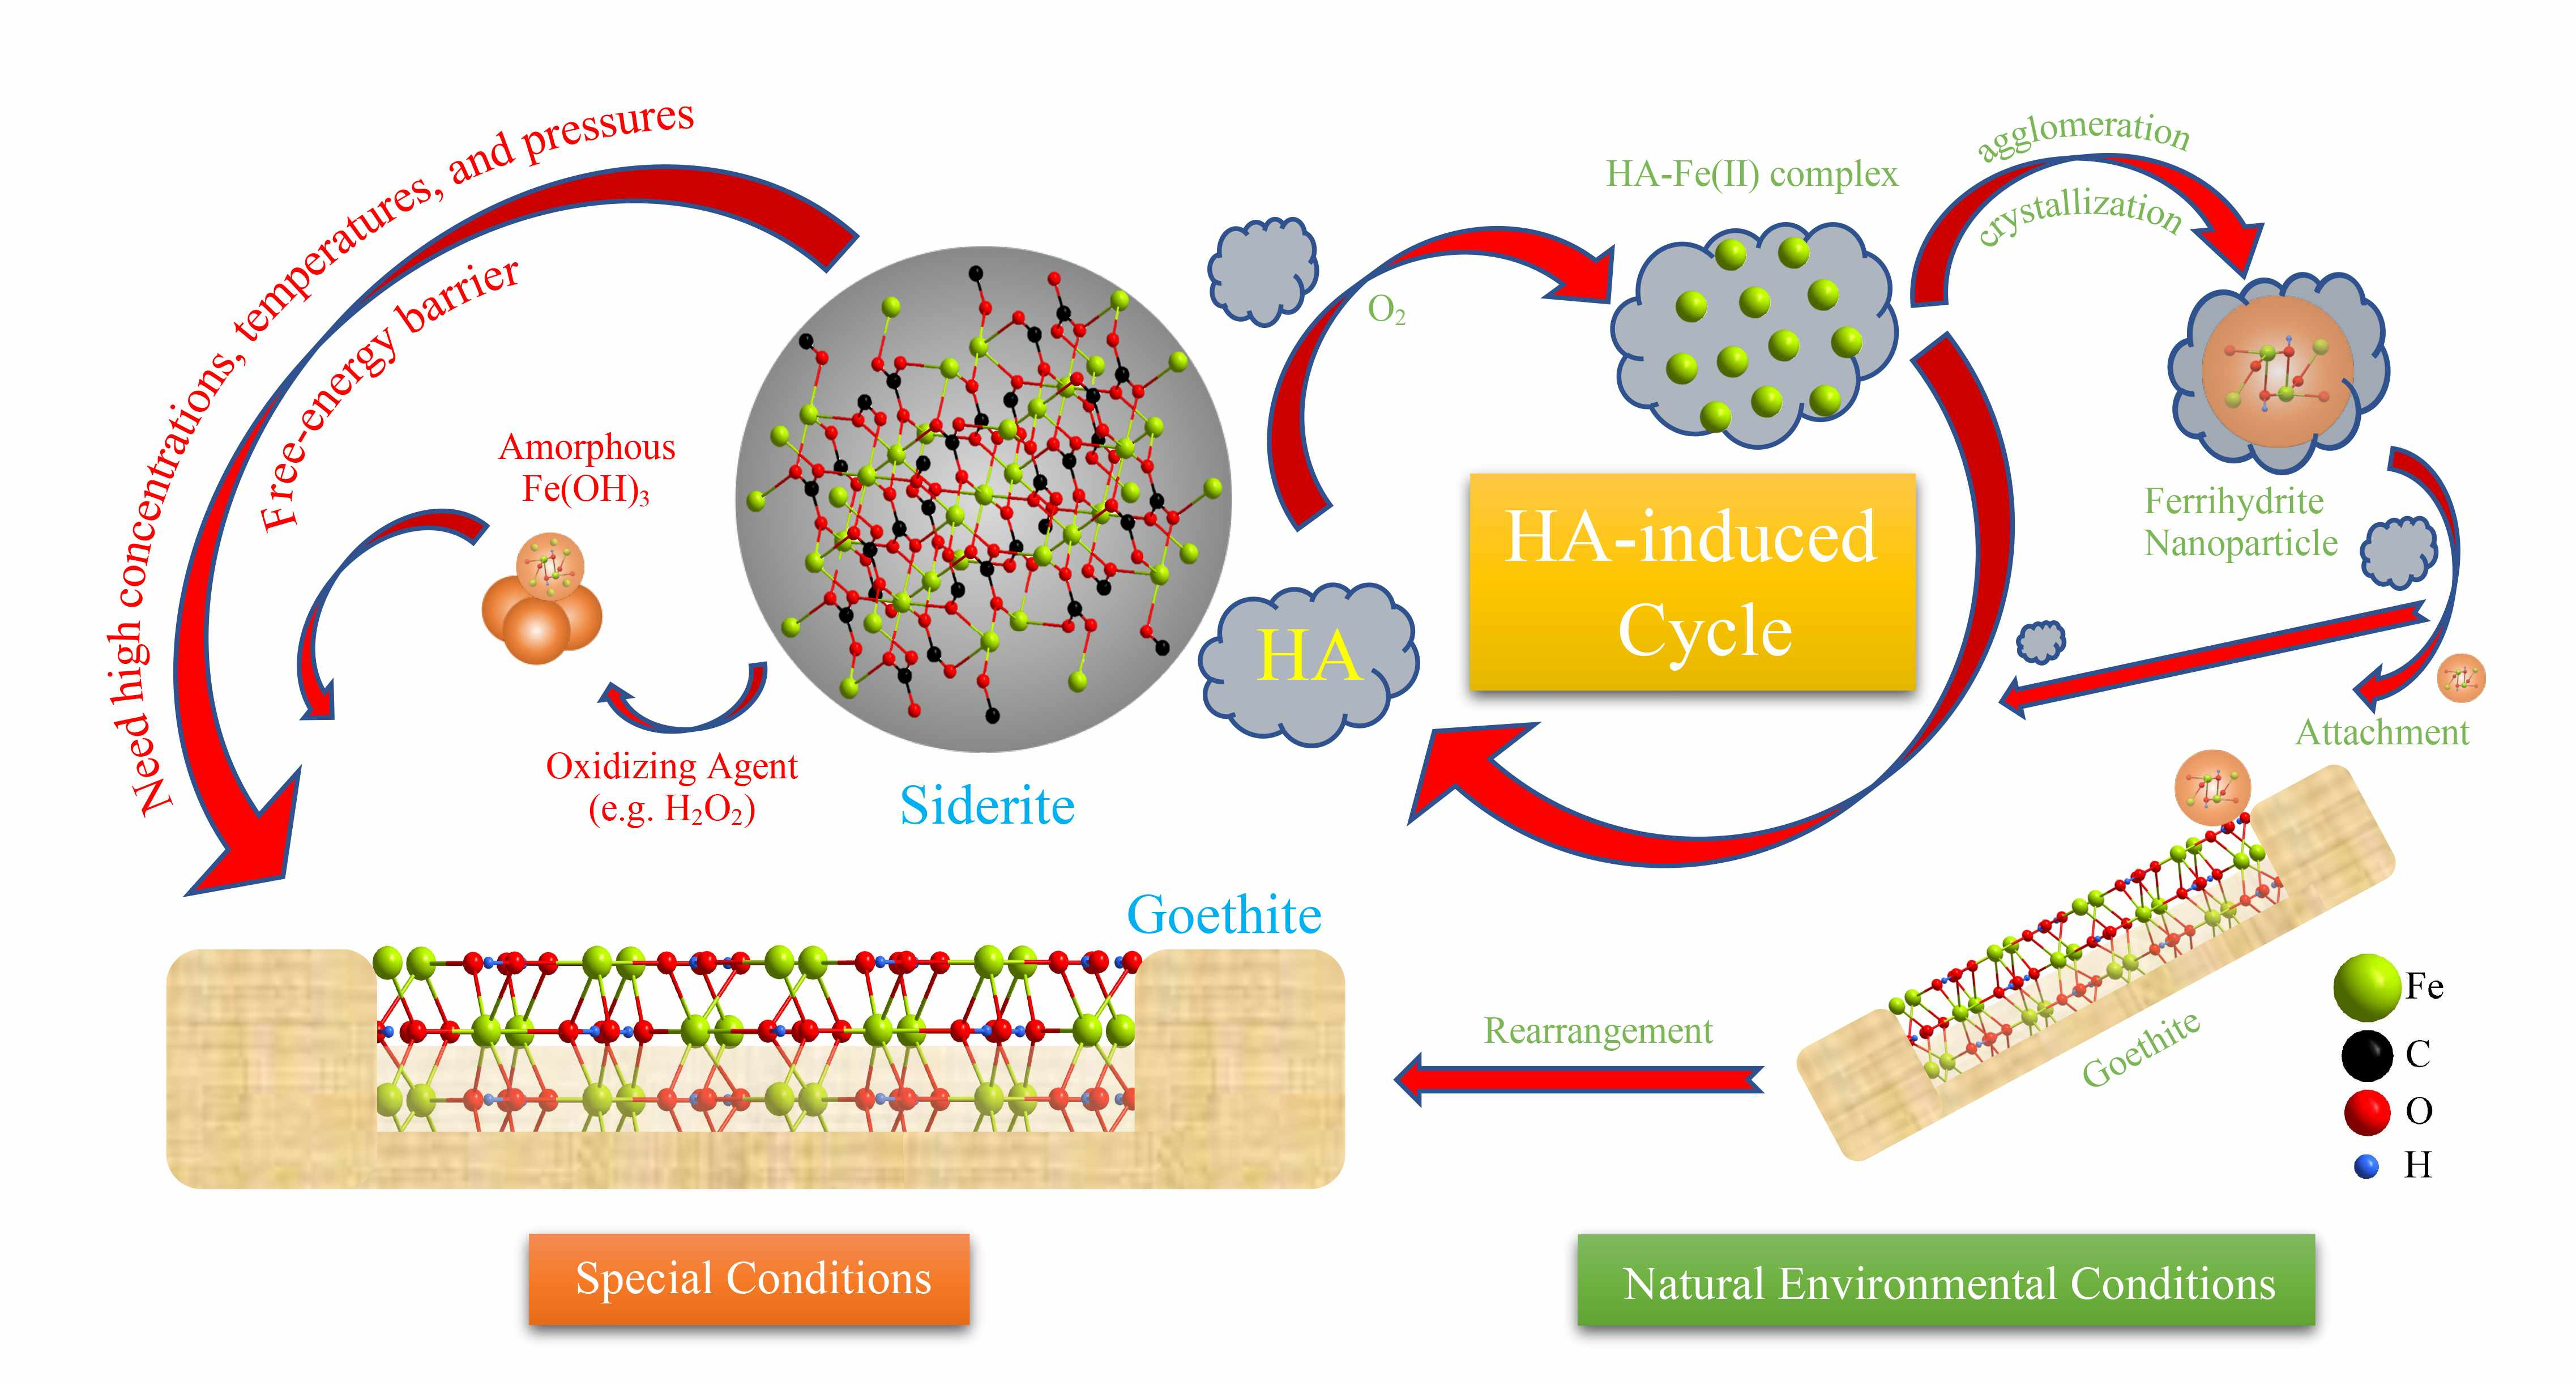 Transformation Of Siderite To Goethite By Humic Acid In The pour Musique Cycle 2